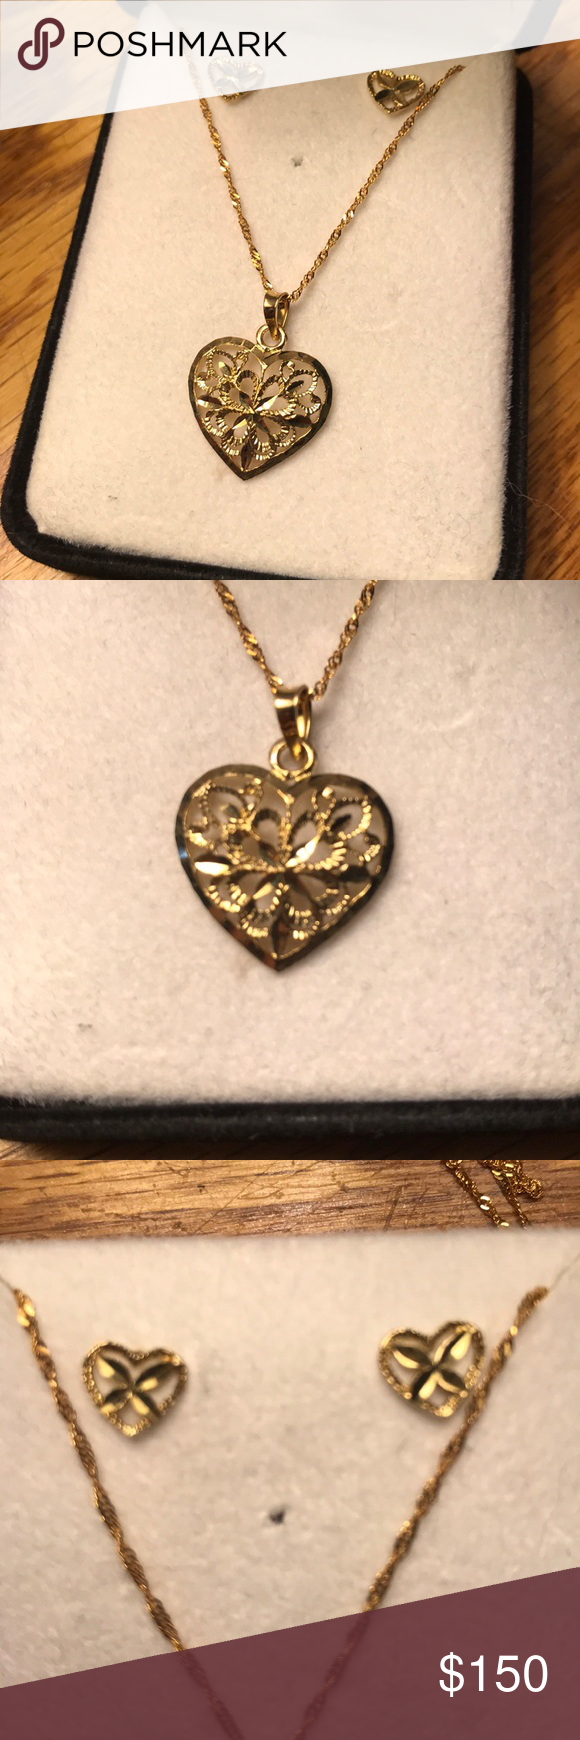 Nwot k gold heart necklace and earrings my posh picks pinterest